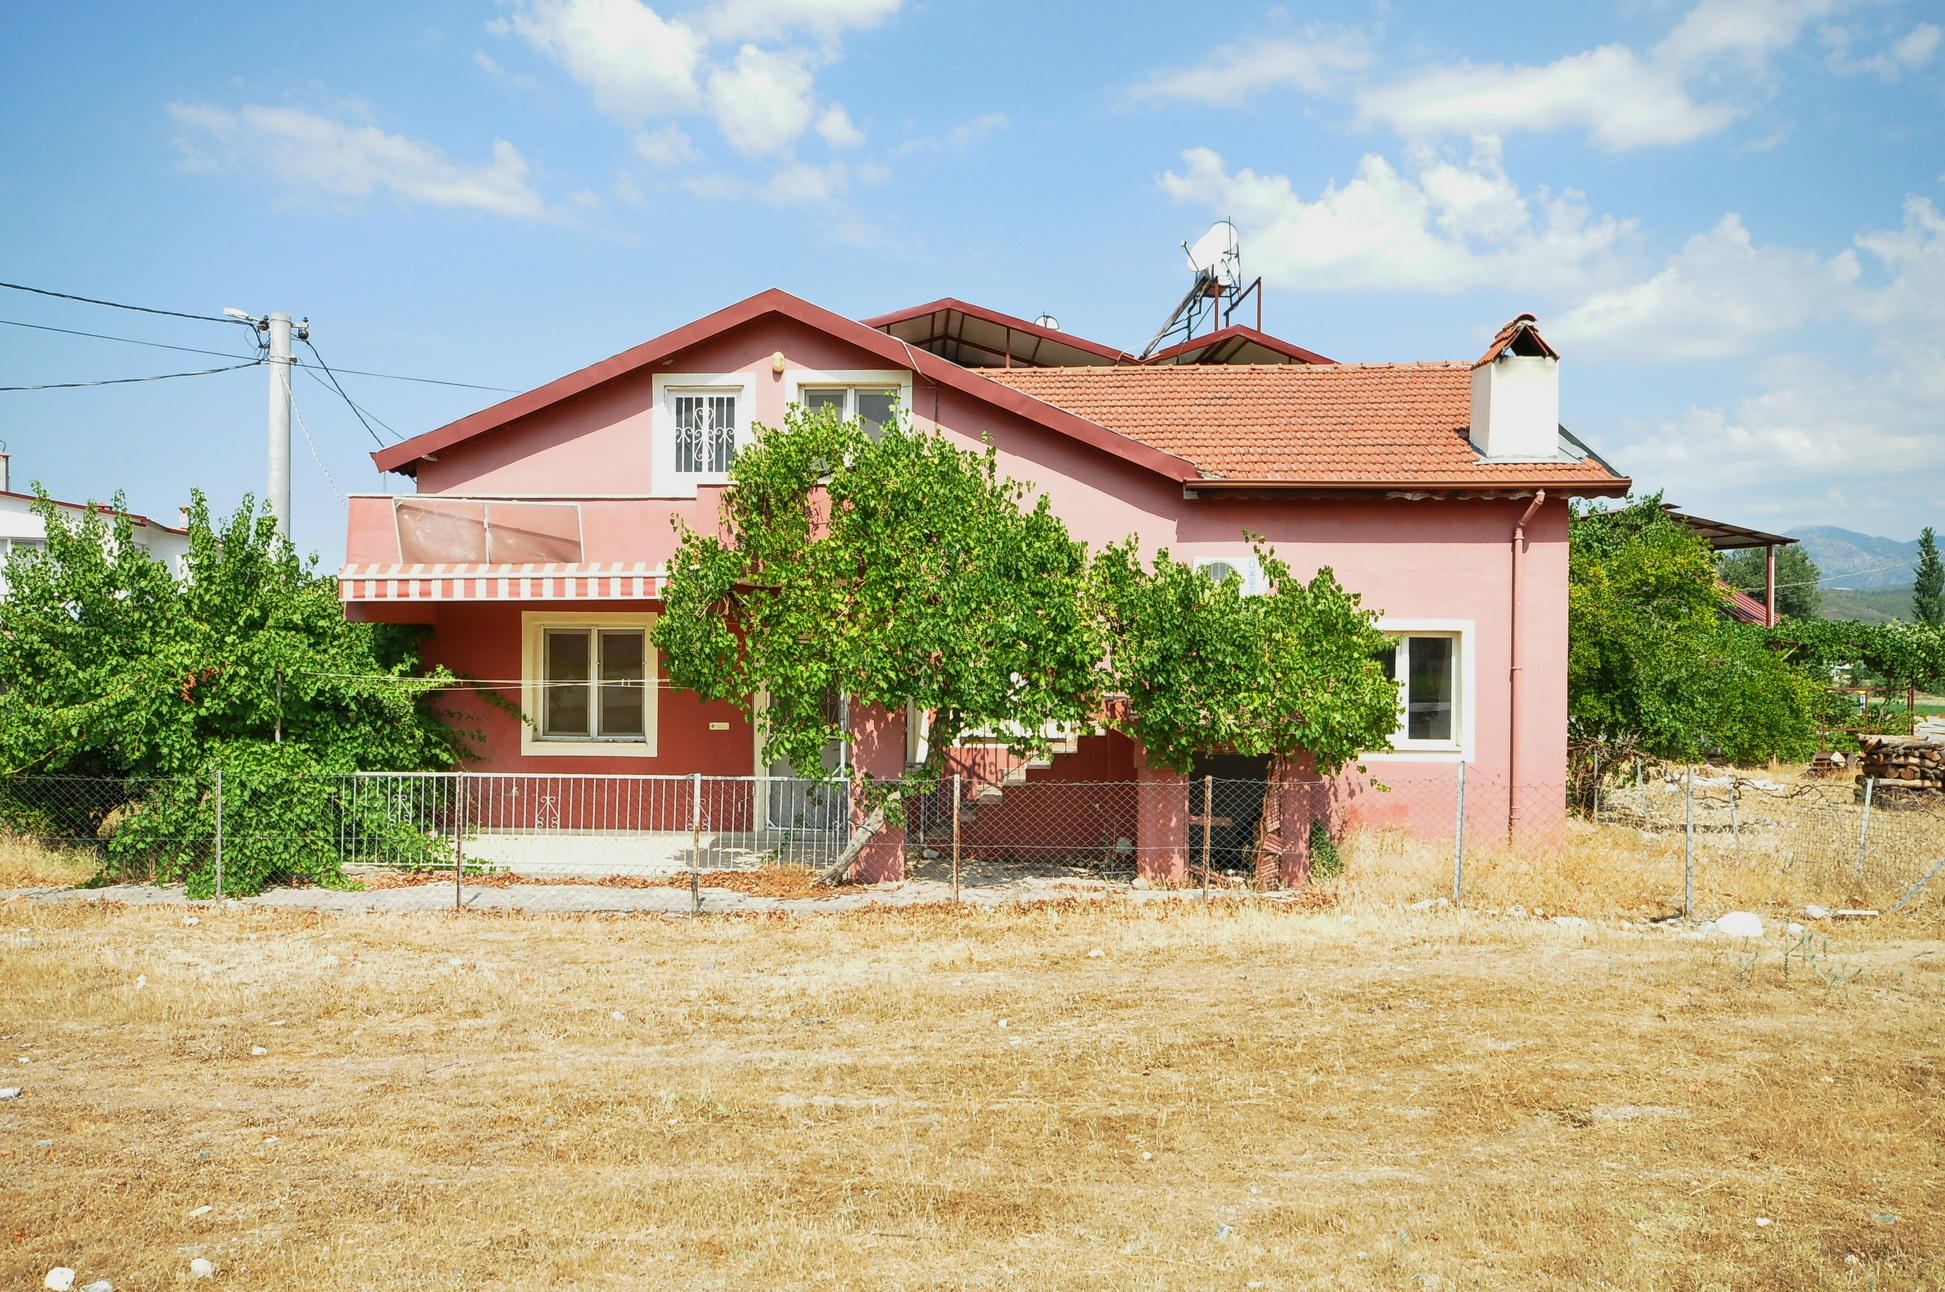 3 Bed Village House / Bungalow for Sale in Seydikemer